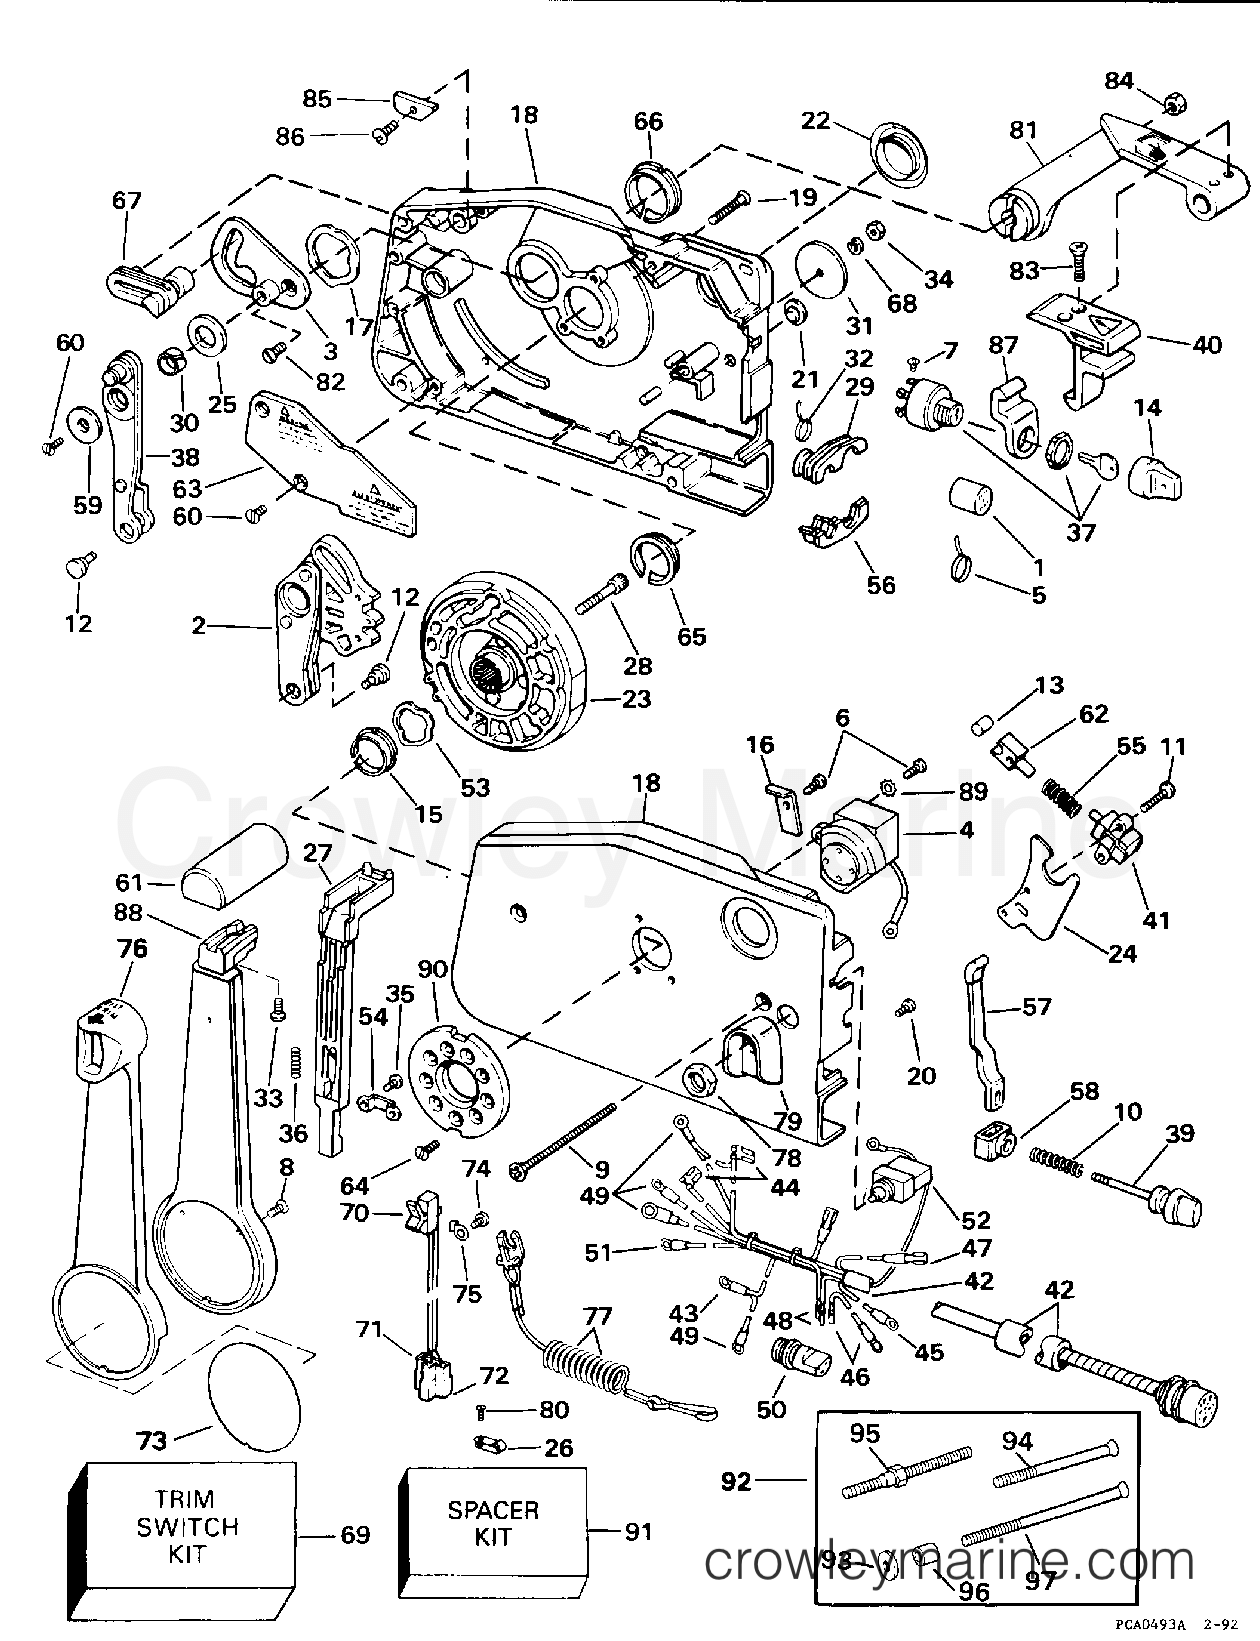 Evinrude Throttle Control Diagram,Throttle Wiring Harness